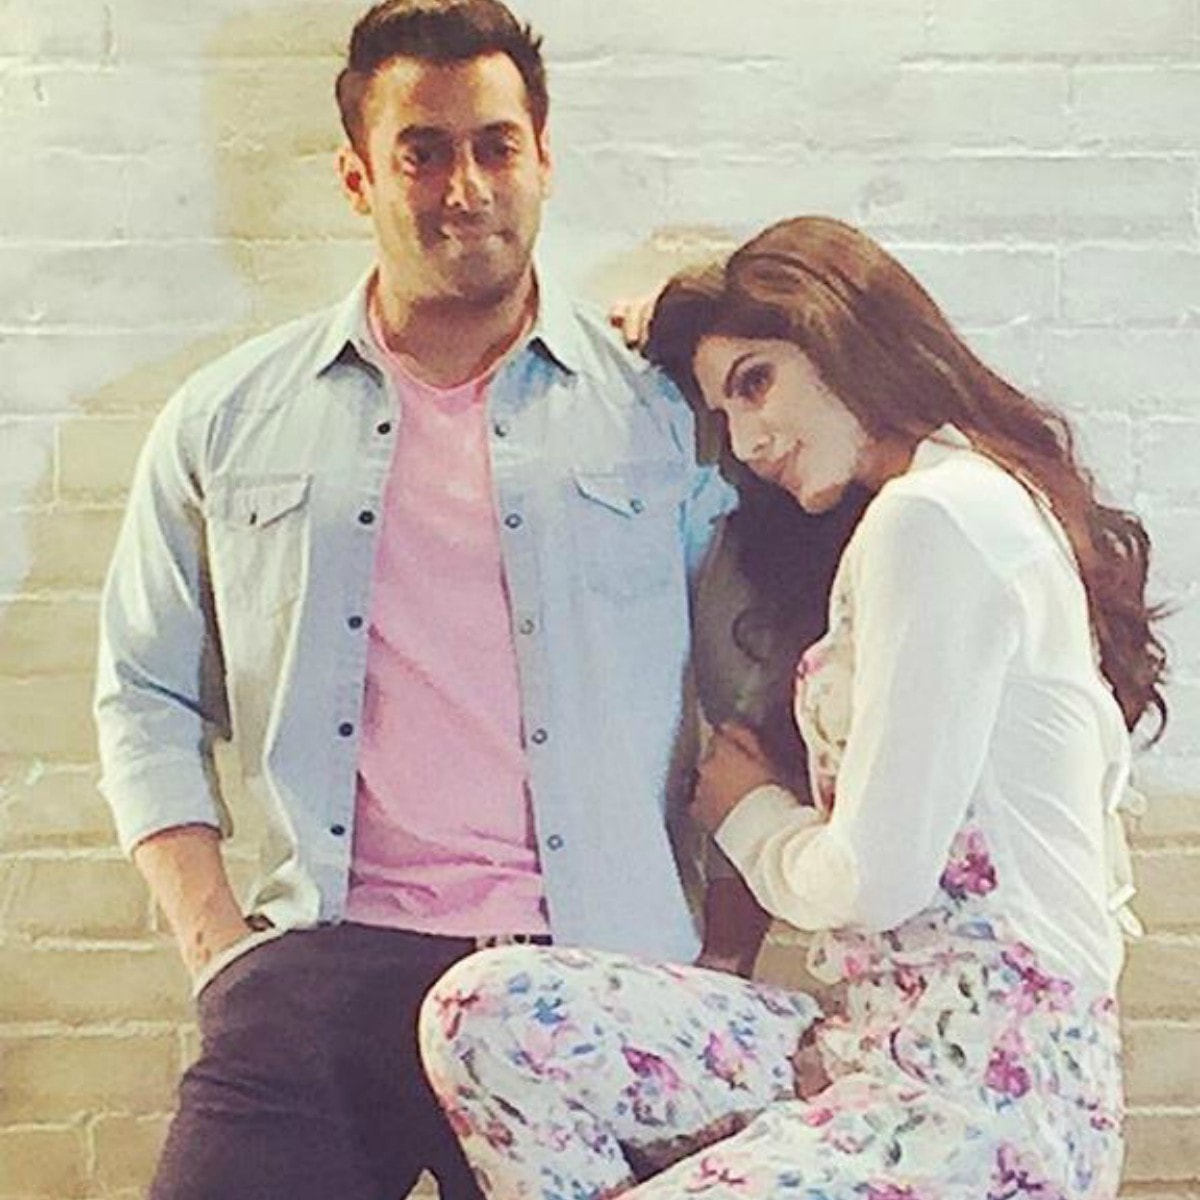 Elnaaz was also roped in to star in Salman Khan's Jutt and Juliet remake, but the project was shelved